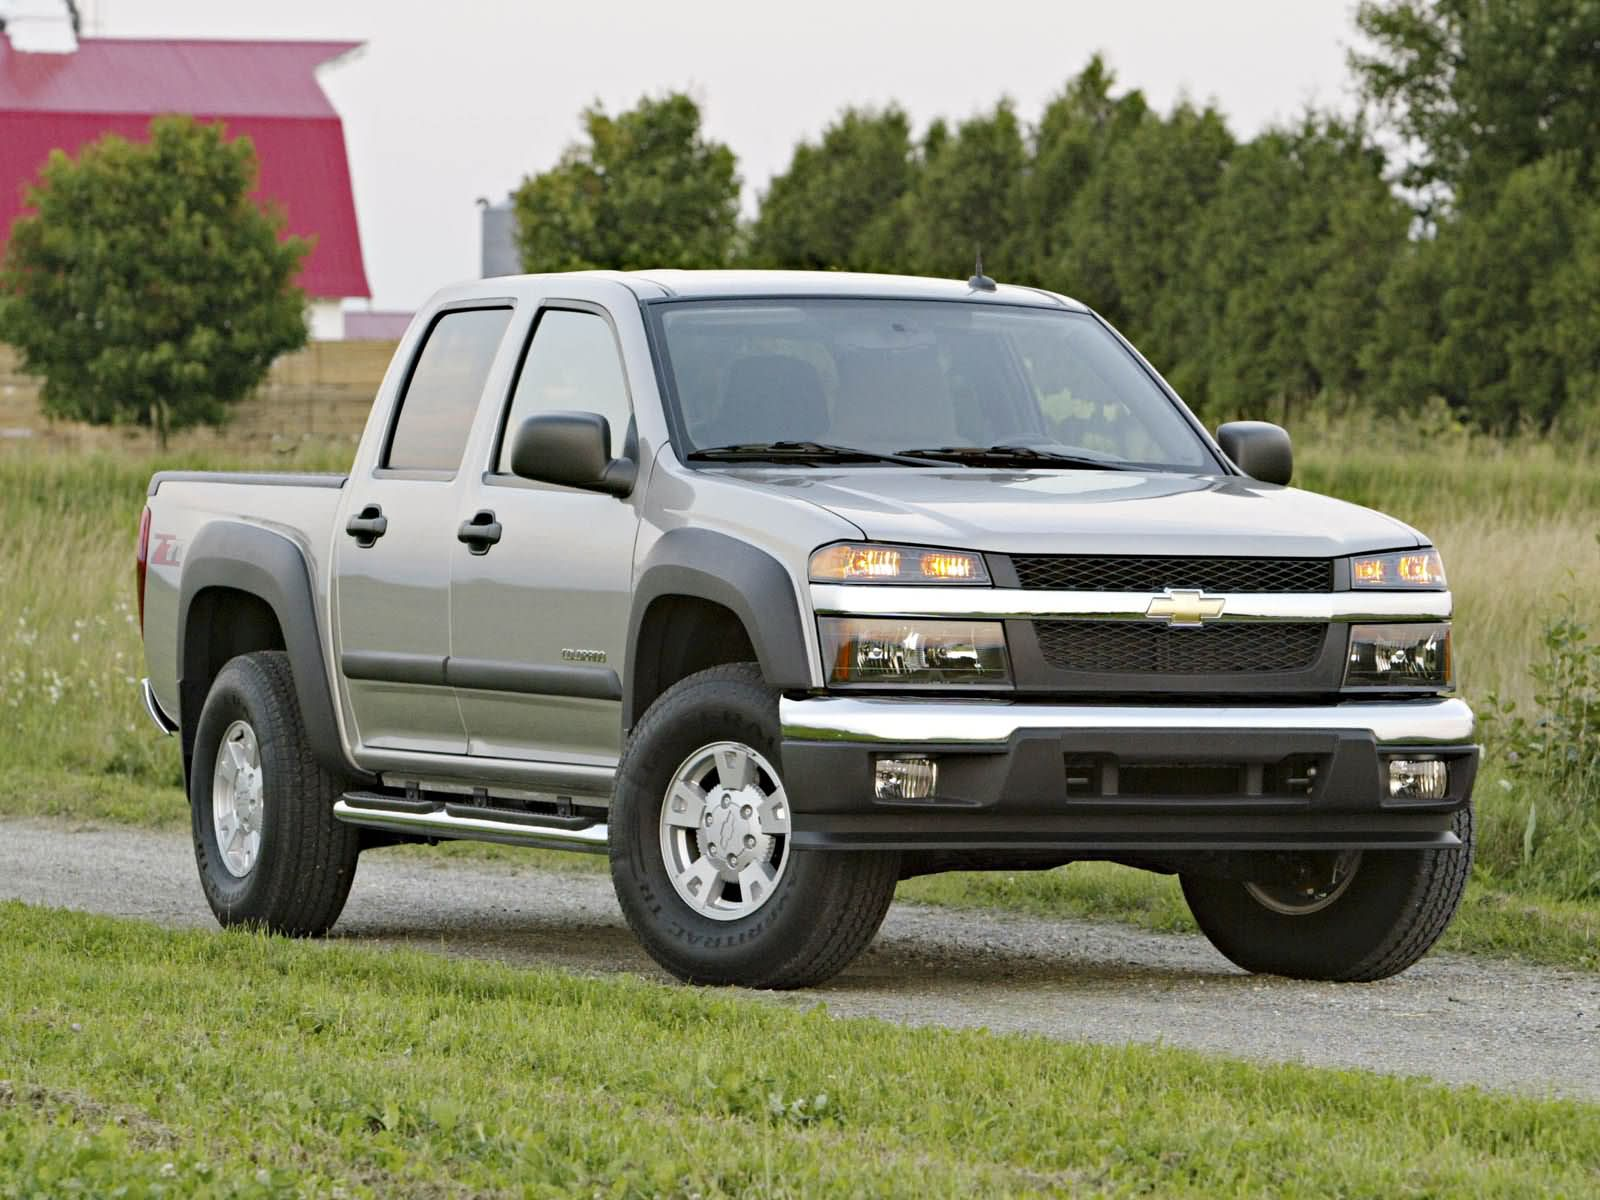 Chevrolet Colorado photo 7688